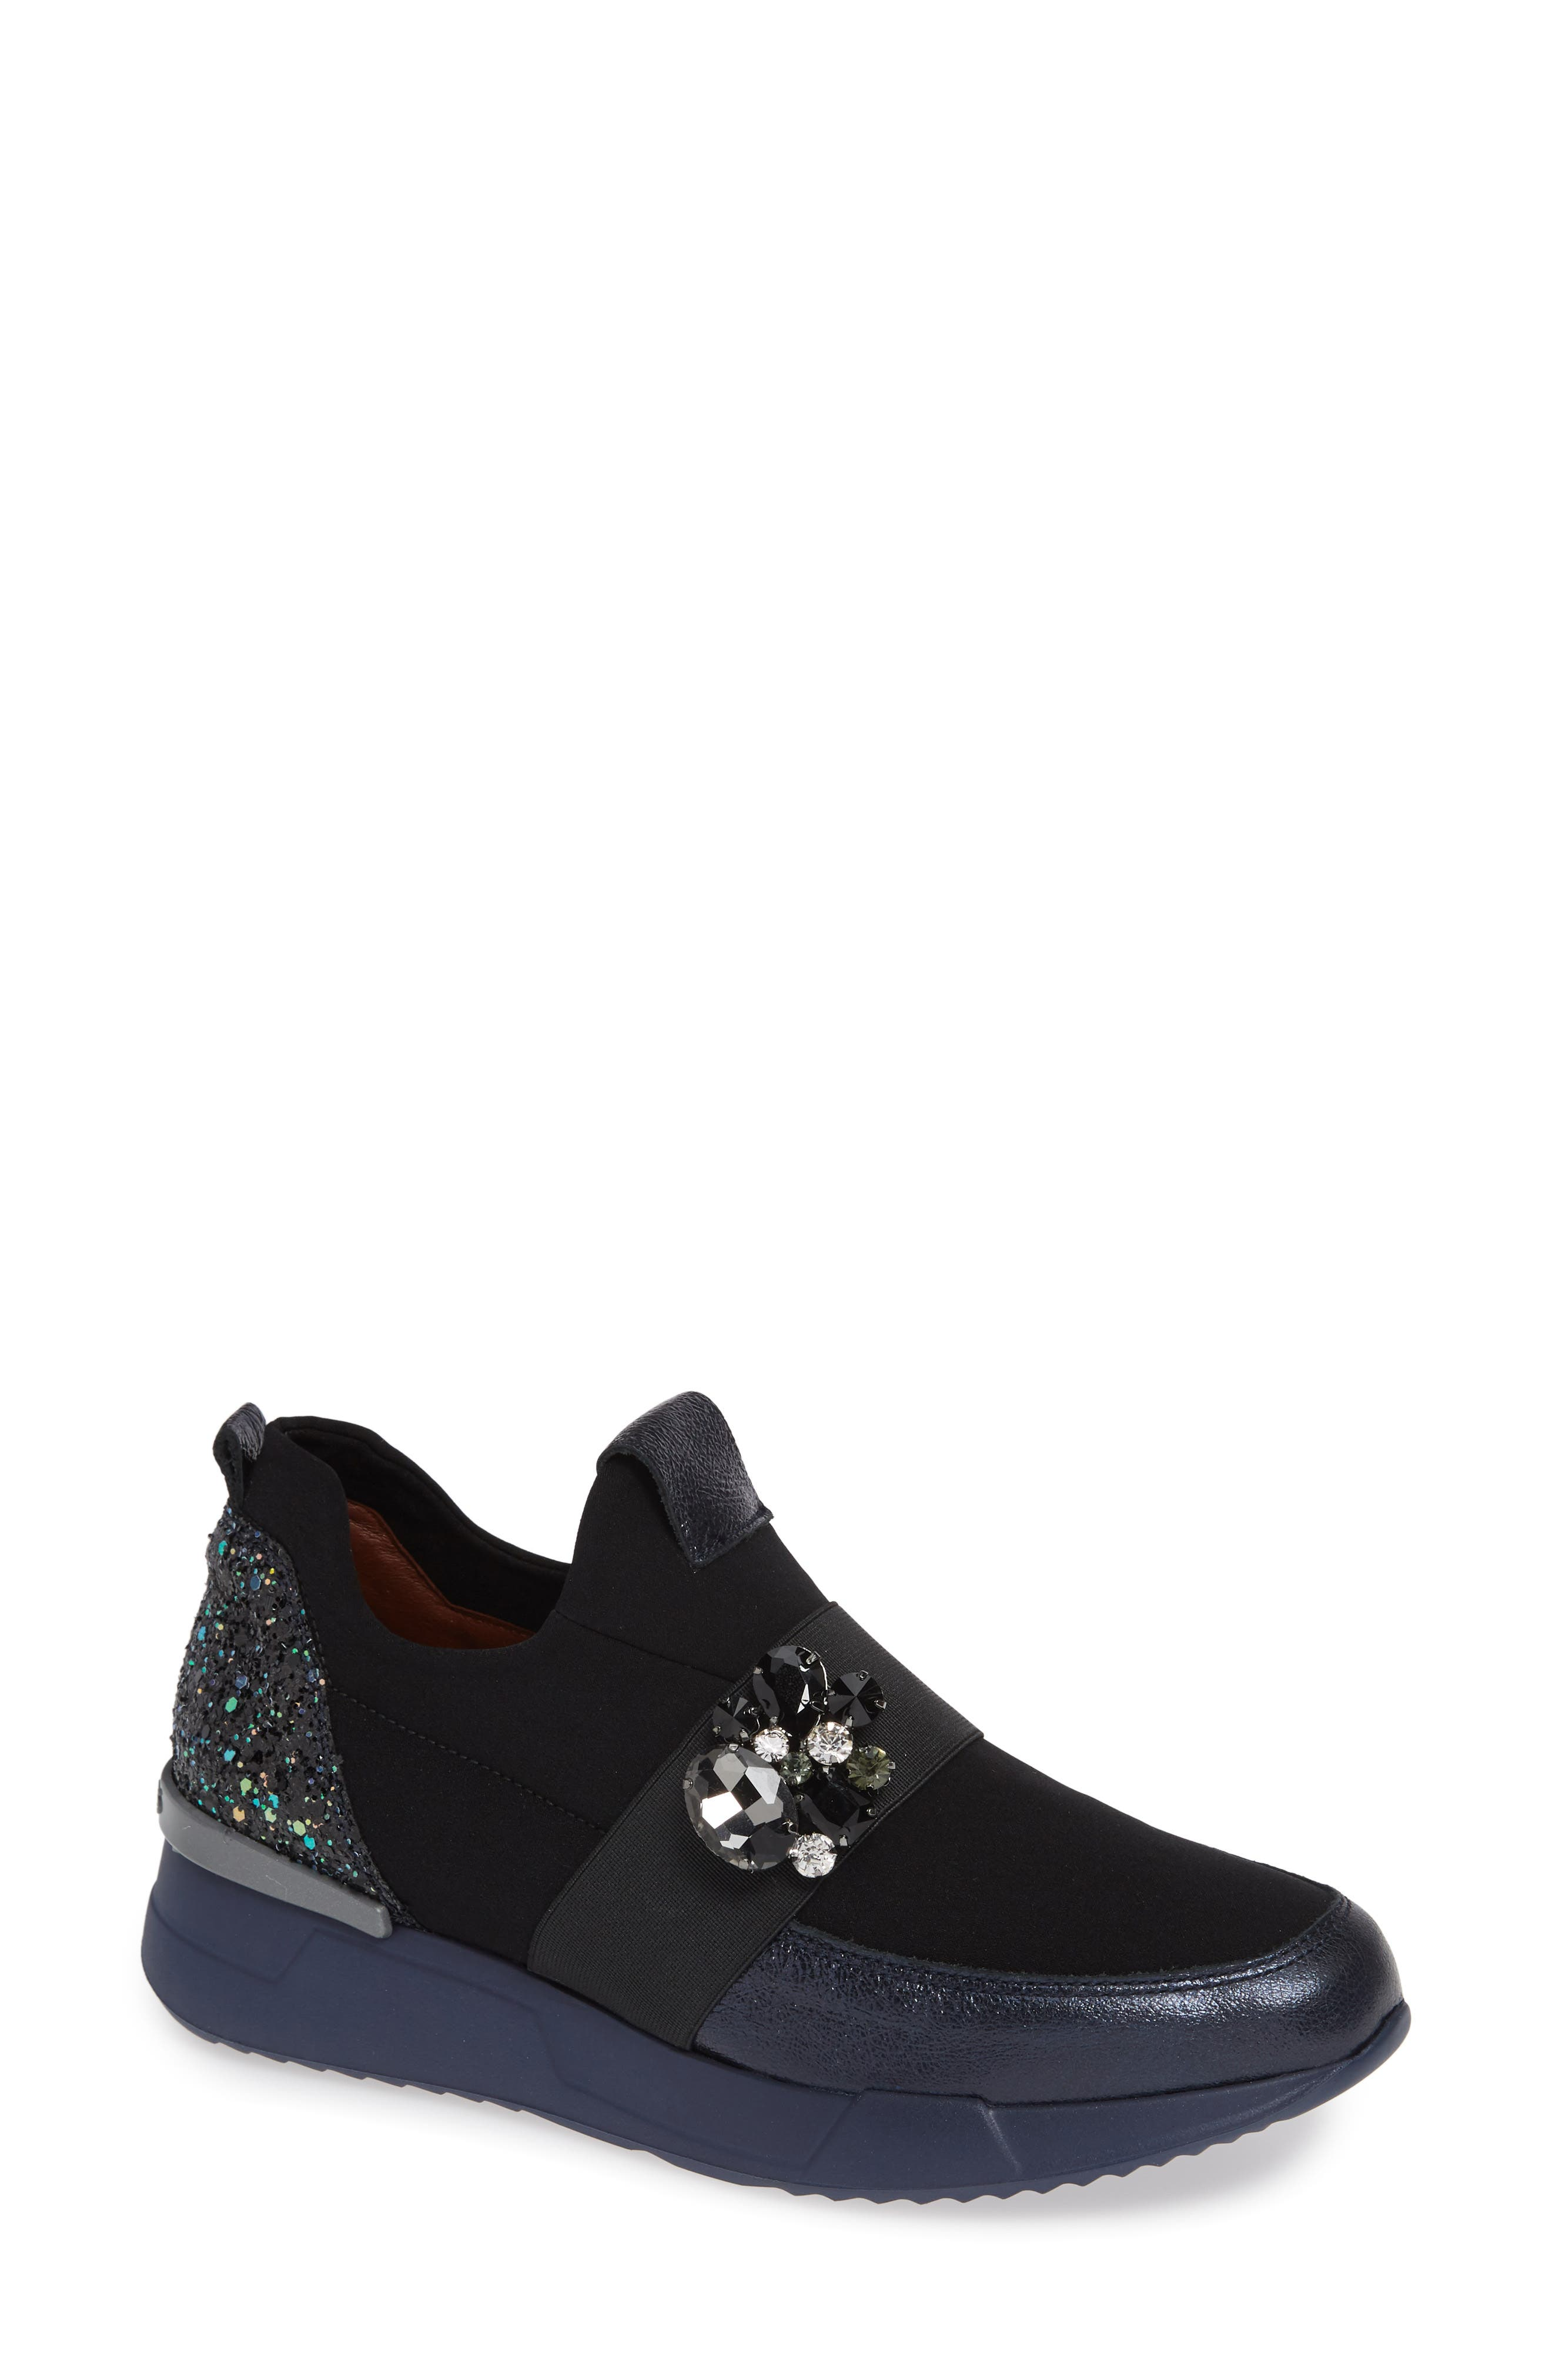 Callen Embellished Sock Sneaker,                             Main thumbnail 1, color,                             SHADOW MARINE LEATHER